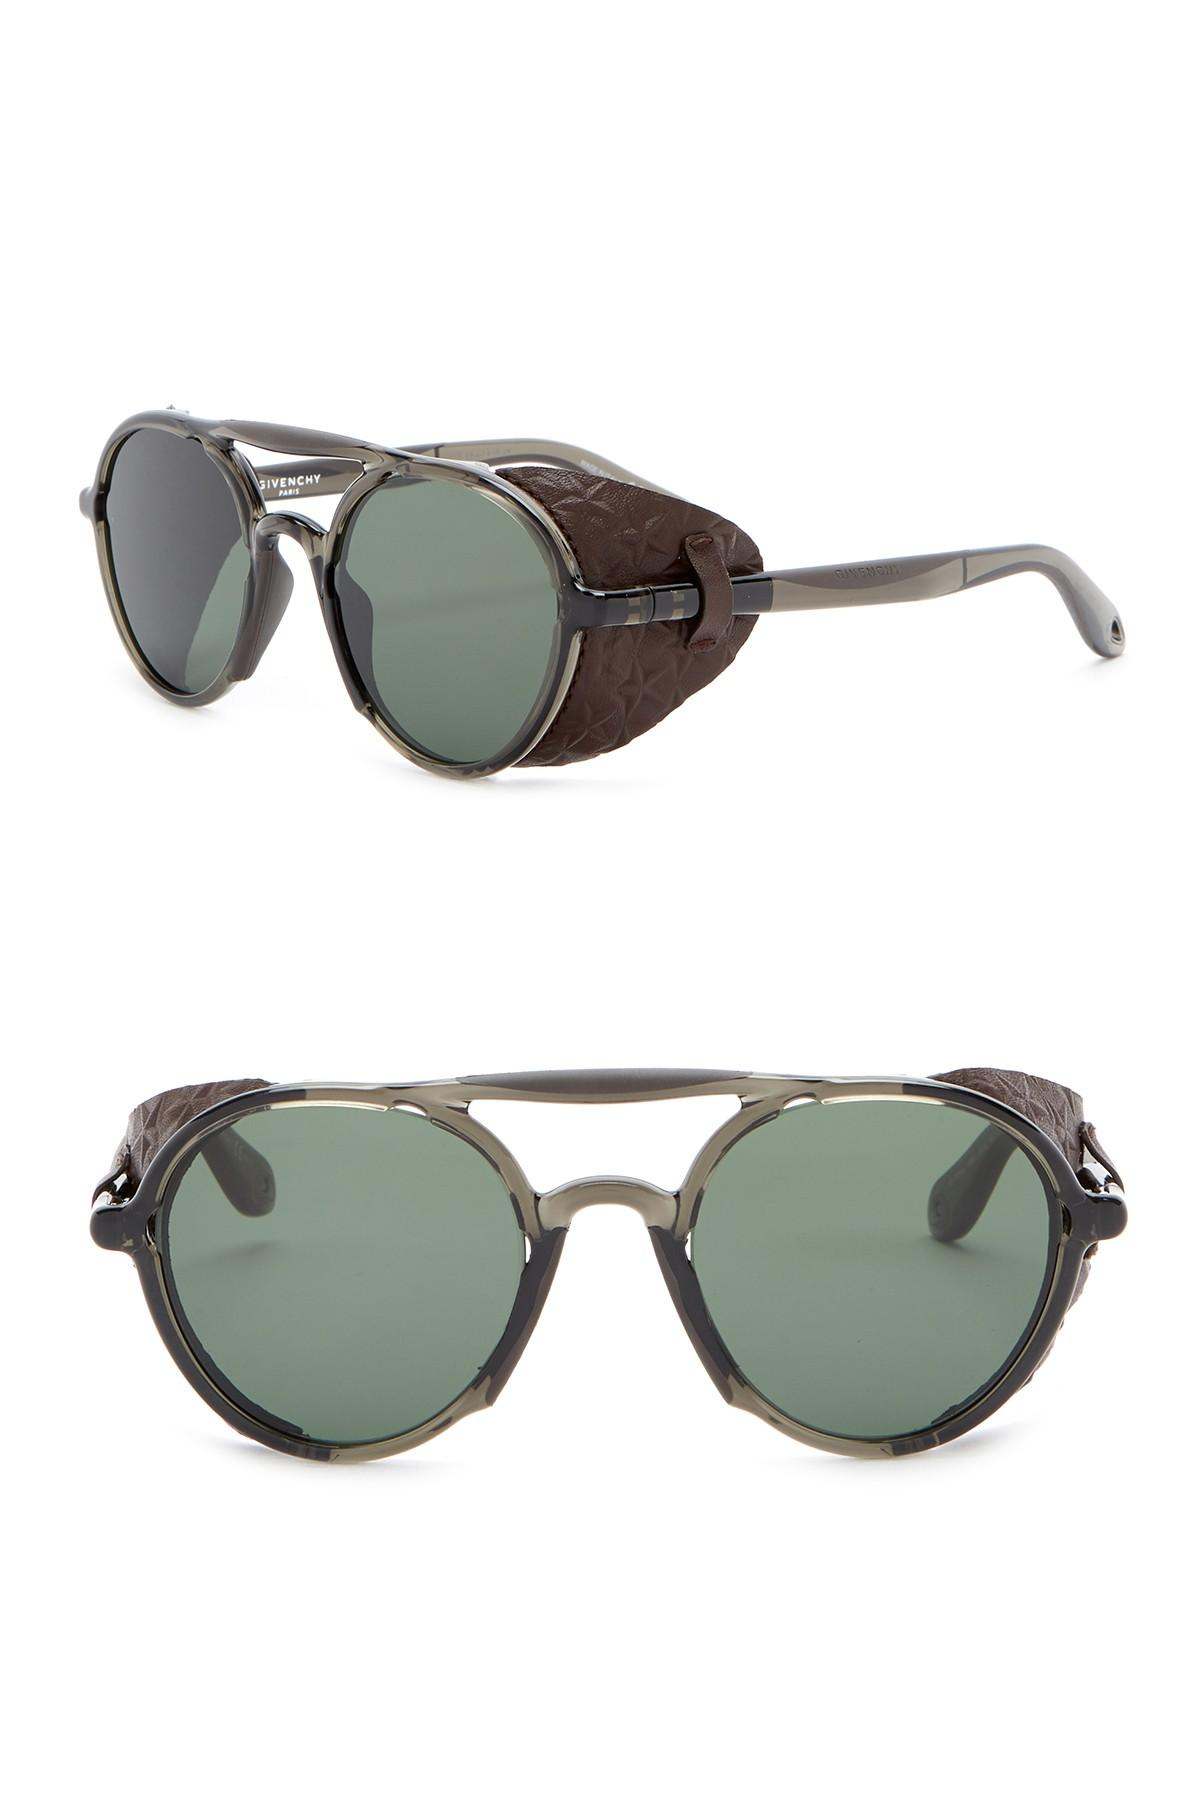 cfd027ed6a625 Givenchy. Women s 50mm Aviator Sunglasses